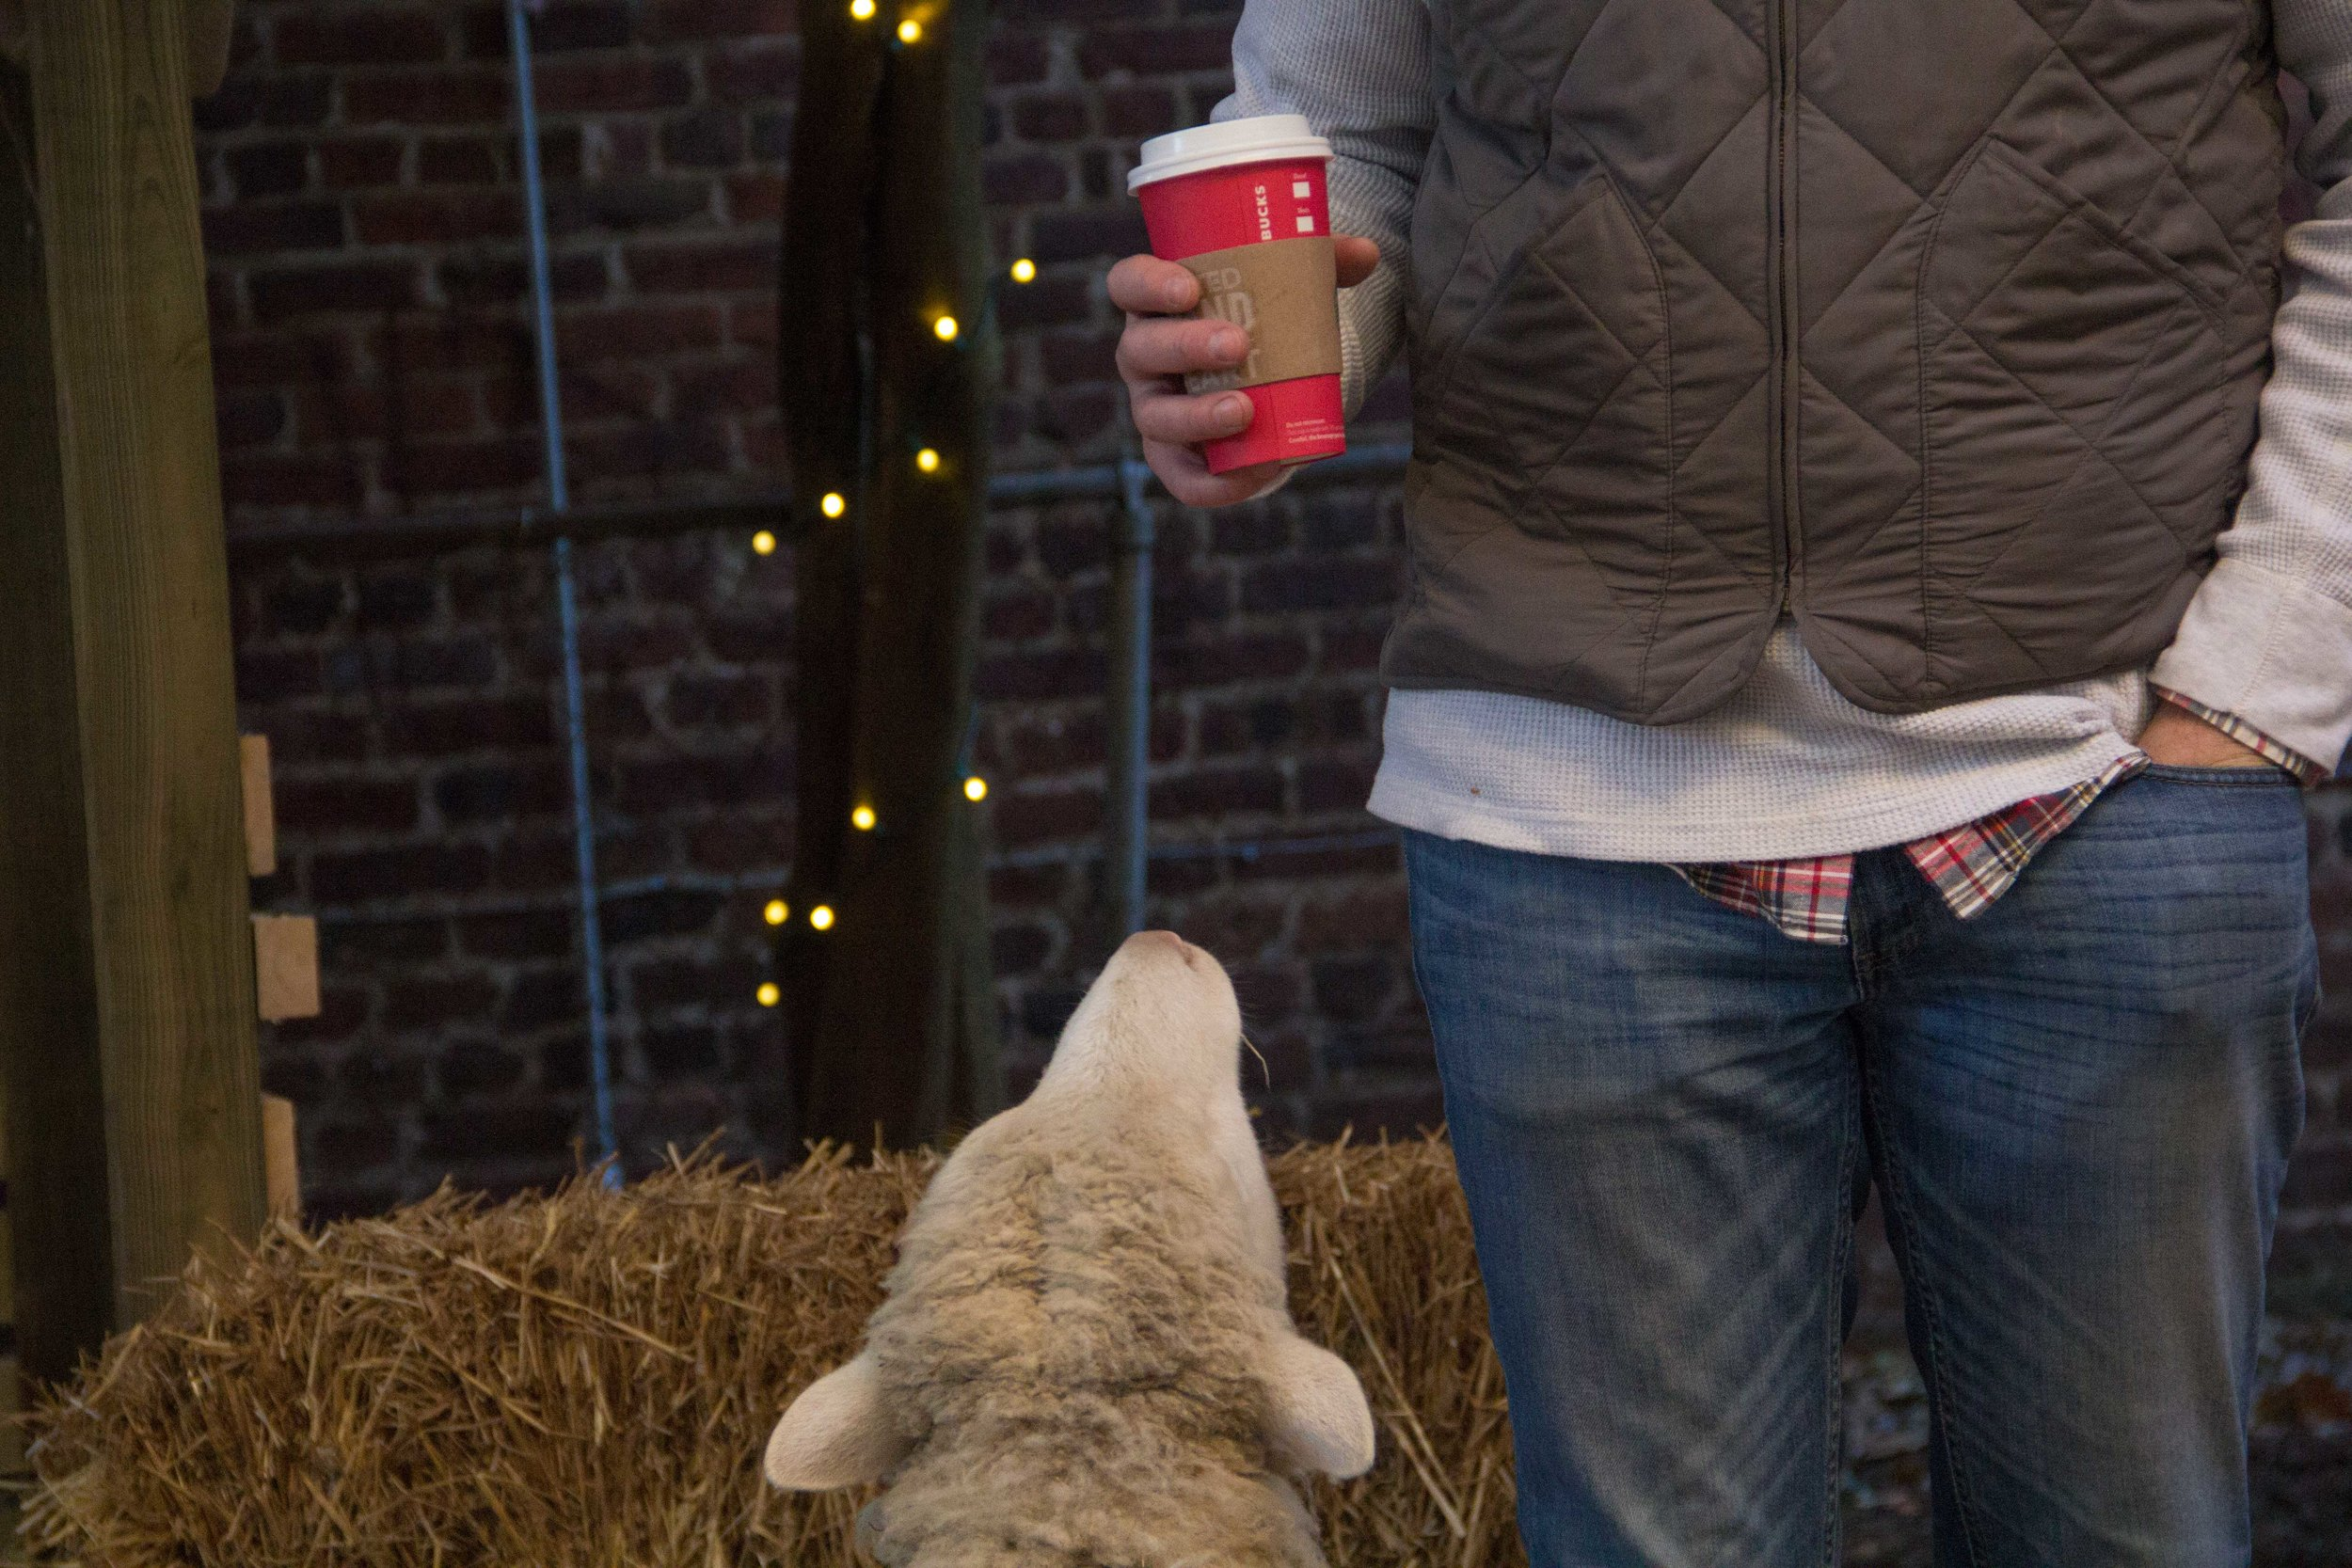 Sheep and Starbucks